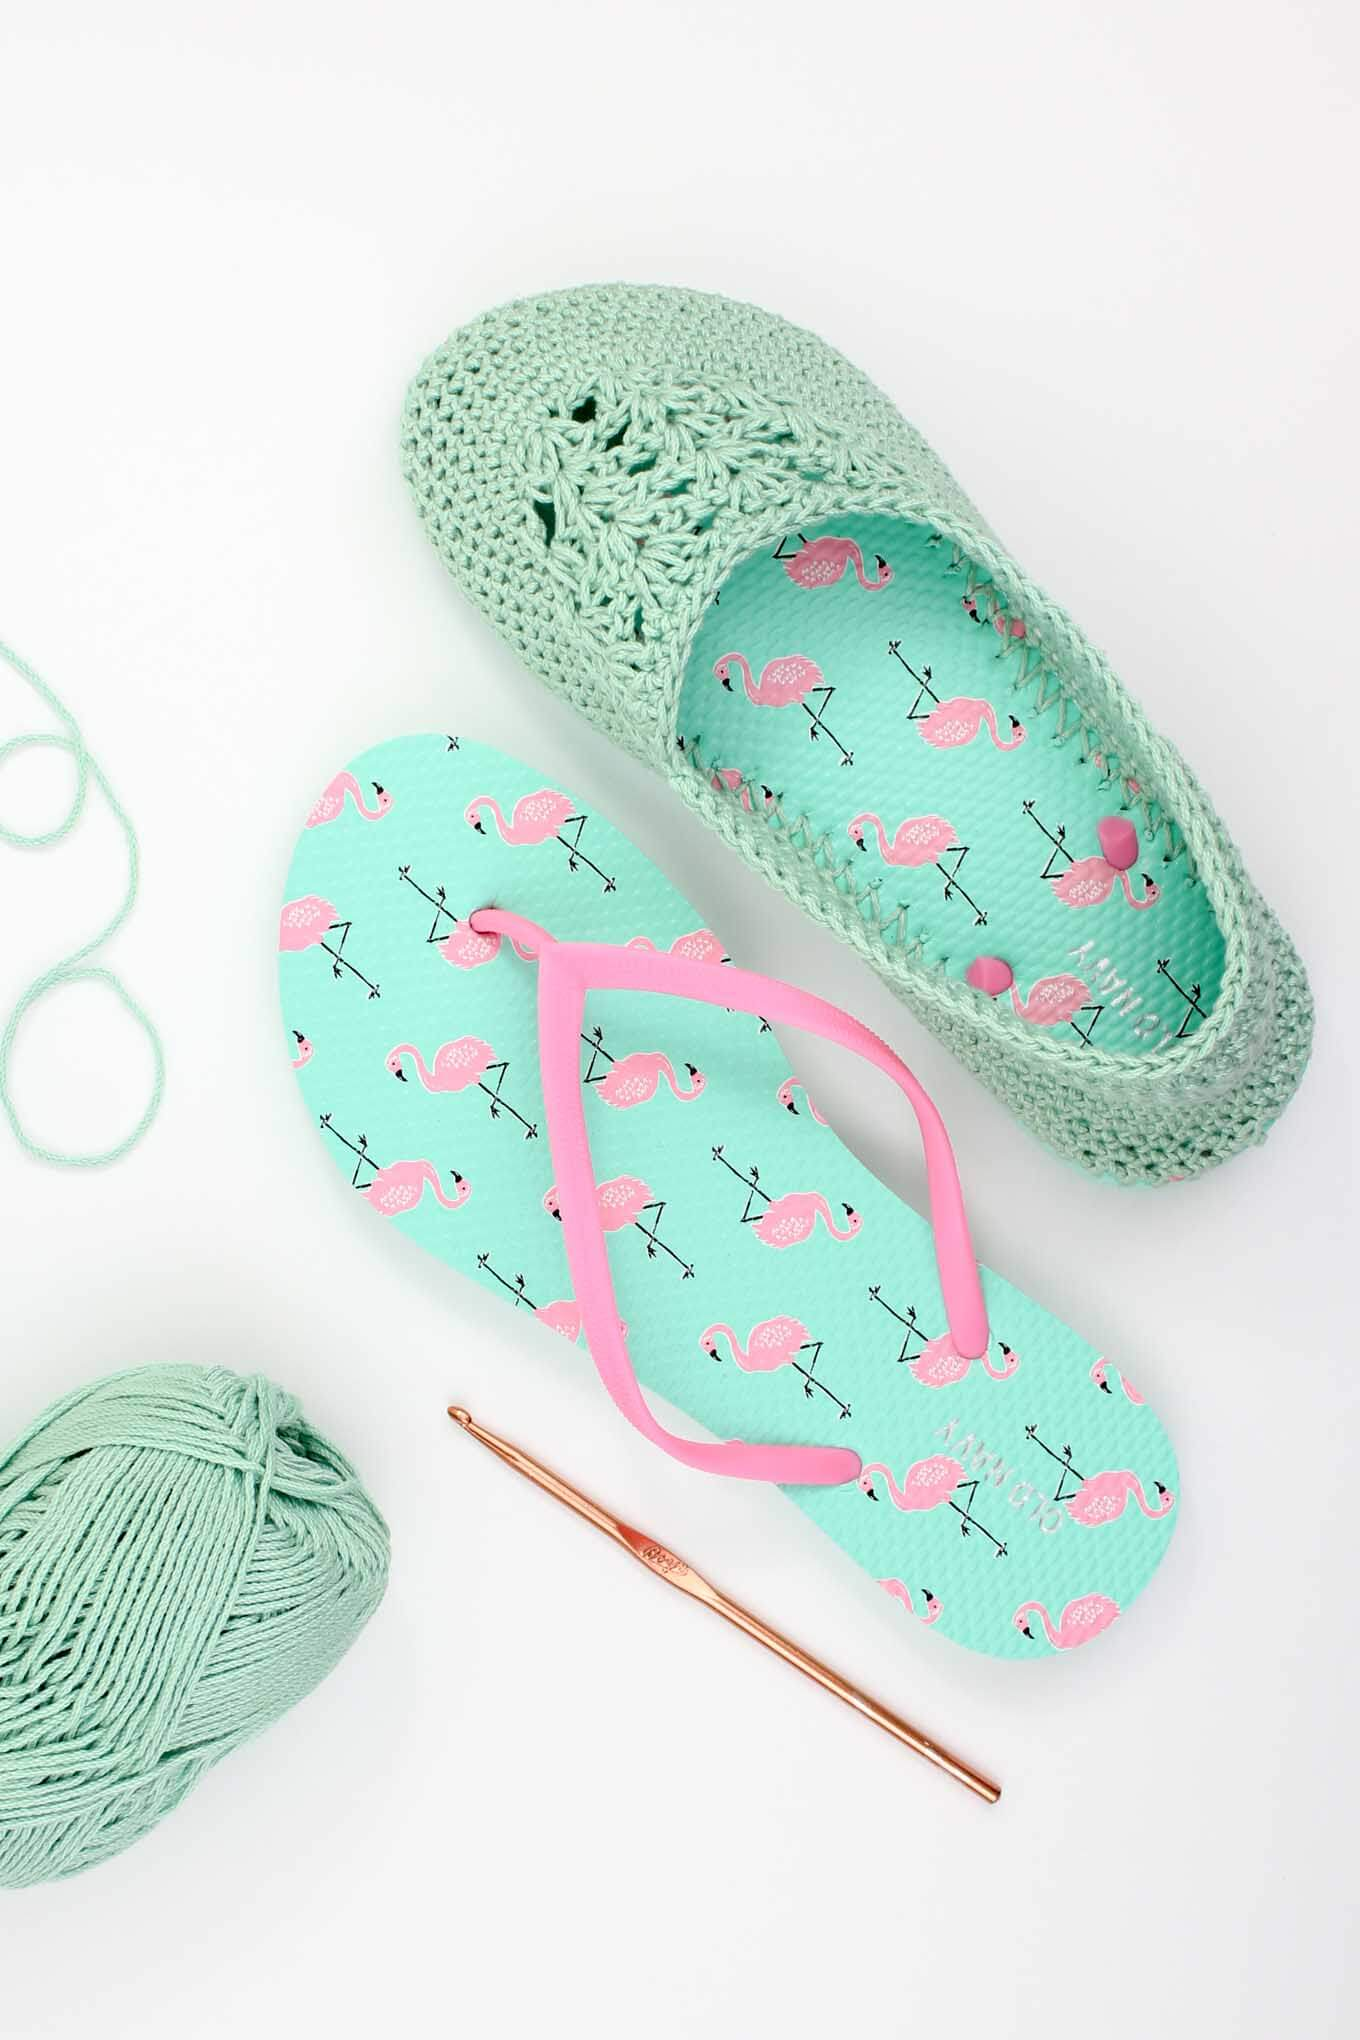 Crochet Slippers With Flip Flop Soles Late Night Crafting